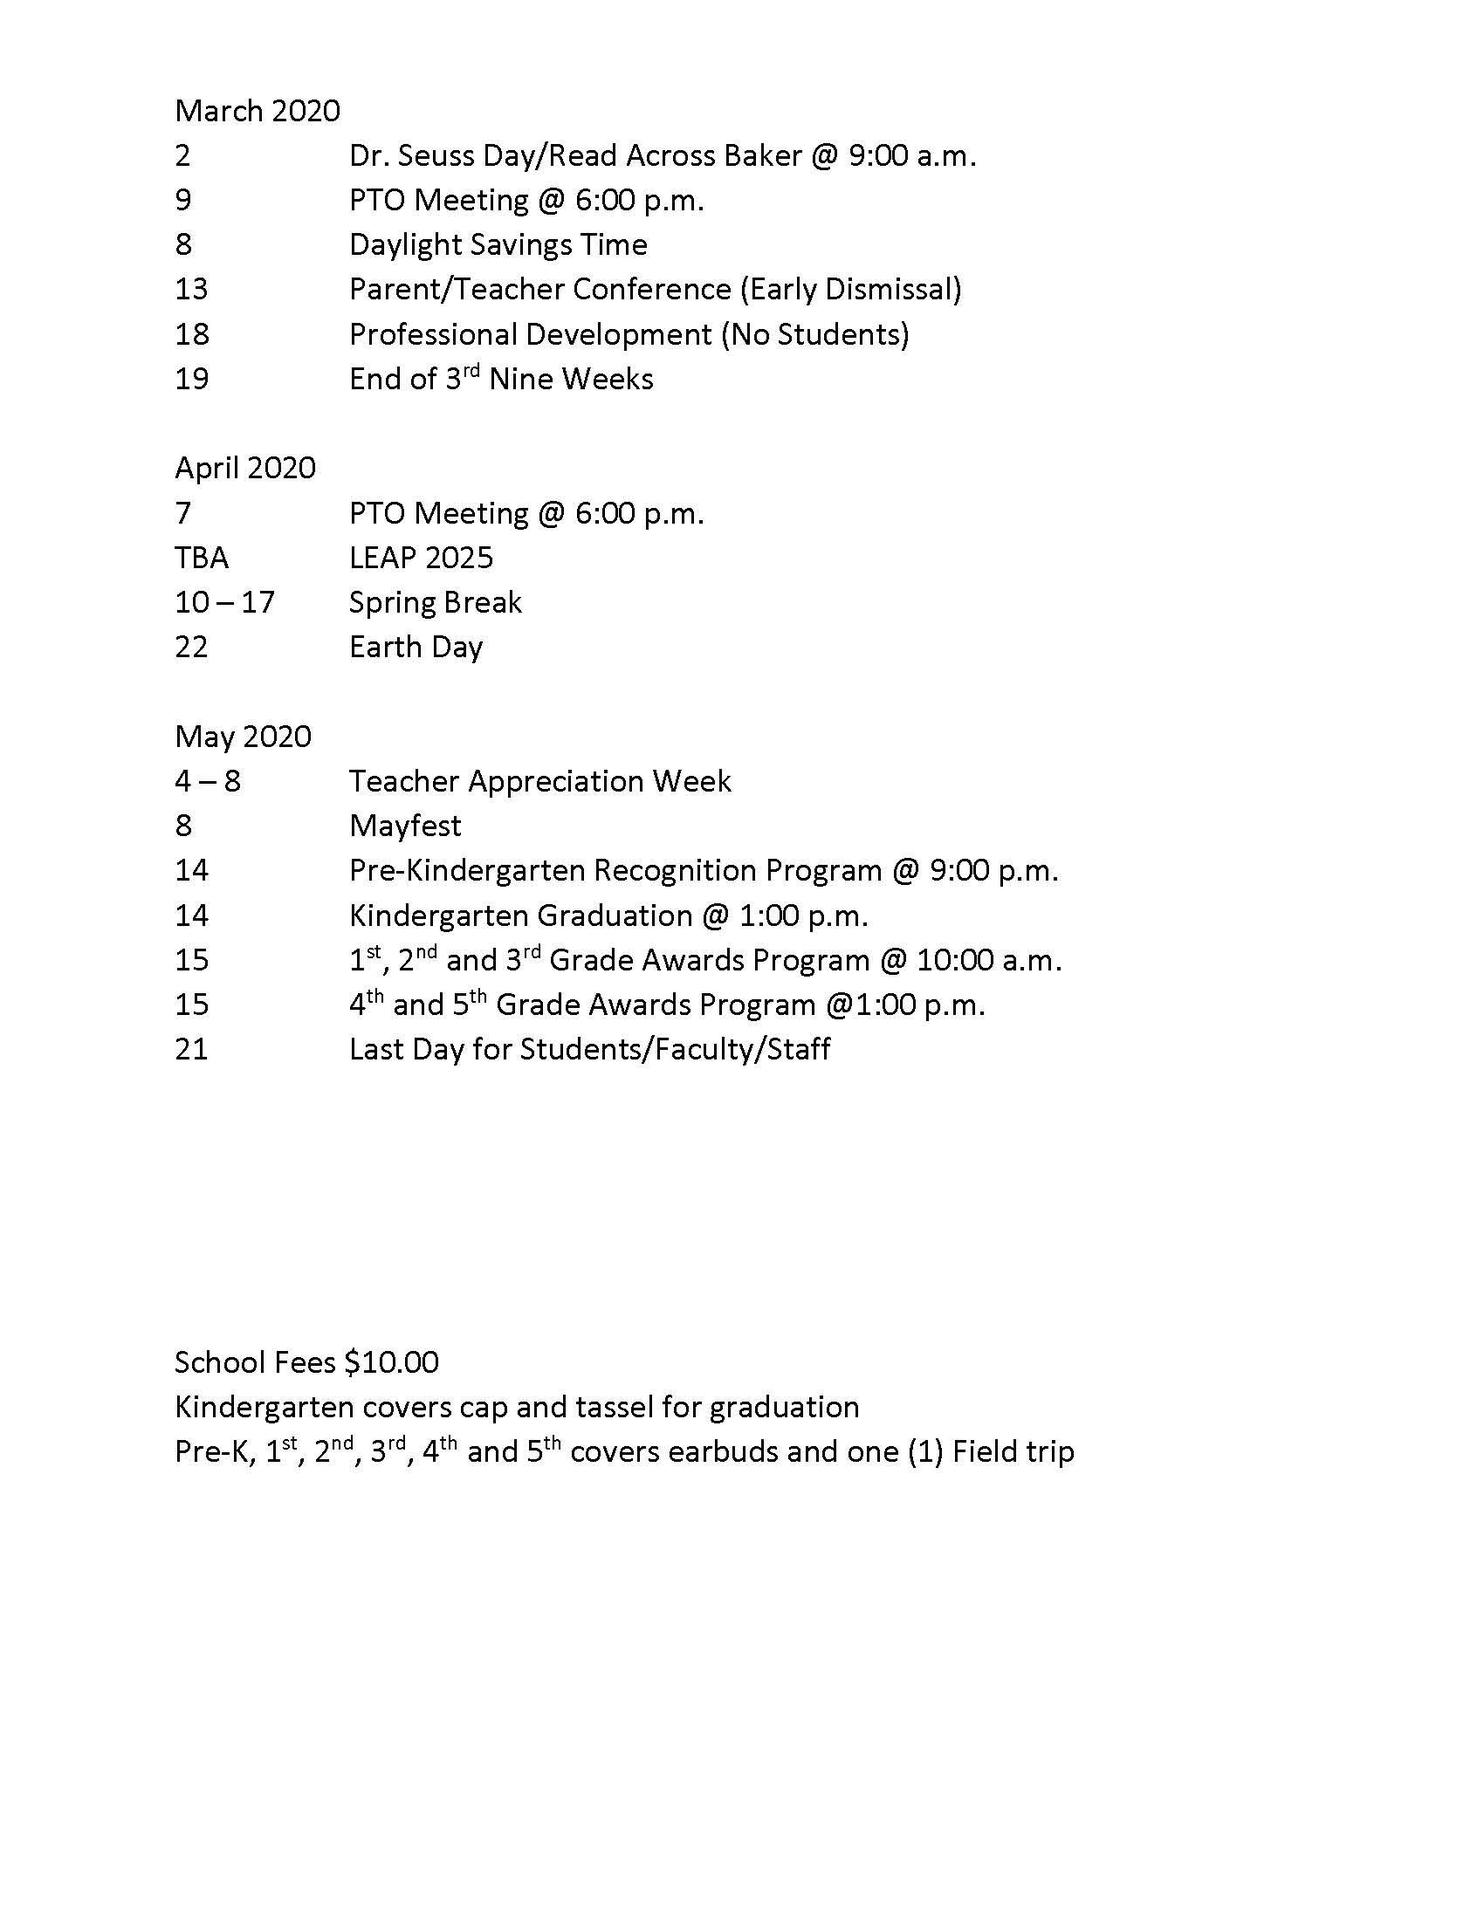 BAKER HEIGHTS/BAKERFIELD ELEMENTARY SCHOOL CALENDAR OF EVENTS 2019-2020 July 2019 24 - 26 Staff Development  29Pre-K Orientation @ 1:00 p.m.  August 2019 13Open House /PTO Meeting @ 6:00 p.m. 30Homecoming Election Forms Due  September 2019 2Labor Day (No School) 10PTO Meeting @ 6:00 p.m. 3Campaign for Homecoming  6Election for Homecoming 9Grandparents Day – Breakfast @ 9:30 a.m. 18Professional Development (No Students) 27Parent/Teacher Conferences (Early Dismissal) TBA Buffalo Festival  October 2019 4Fall School Pictures (Uniforms) 8PTO Meeting @ 6:00 p.m. 10End of 1st Nine Weeks) 11Muffins with Mom @ 9:30 a.m. 14Fall Break 15Fall Break/Professional Development (No Students) 18Muffins with Mom @ 9:30 a.m. 22 – 25National School Bus Safety Week 28 – 31Red Ribbon Week 25BHS Homecoming Parade (Early Dismissal @ 12:00 p.m.)   November 2019 3Daylight Saving Time Ends 12PTO Meeting @ 6:00 p.m. 7Donuts with Dad @ 9:30 a.m. 11Fall Picture Retakes 13Professional Development (No Students) 19Science Fair 20Family Math, Science and Technology Night @ 6:00 p.m. 21Thanksgiving Lunch with Parents (Grades Pre-K thru 2nd Only) 25 – 29Thanksgiving Holiday  December 2019 10PTO Meeting @ 6:00 p.m. 11Pre-K Winter Showcase @ 1:00 p.m. 13Winter Formal @ 6:00 – 8:00 p.m. 17 – 19Early Dismissal (No Students) 18Faculty/Staff Christmas Party 19End of 2nd Nine Weeks/1st Semester 20 – 31Winter Break  January 2020 1 – 3Winter Break 6Professional Development (No Students) 7Students Return 7PTO Meeting @ 6:00 .m. 16100 Days of School 17Parent/Teacher Conferences (Early Dismissal) 20Martin Luther King Jr. Day  February 2020 11PTO Meeting @ 6:00 p.m. 18Black History Program @ 9:00 a.m. 19Professional Development (No Students) 23Mardi Gras Parade Around the School @ 1:00 p.m. 24 – 26Mardi Gras Holiday 27Family Literacy Night @ 6:00 p.m. 28Spring Pictures (Dressy Attire)     March 2020 2Dr. Seuss Day/Read Across Baker @ 9:00 a.m. 9PTO Meeting @ 6:00 p.m. 8Daylight Savings Time 13Parent/Teacher Confere